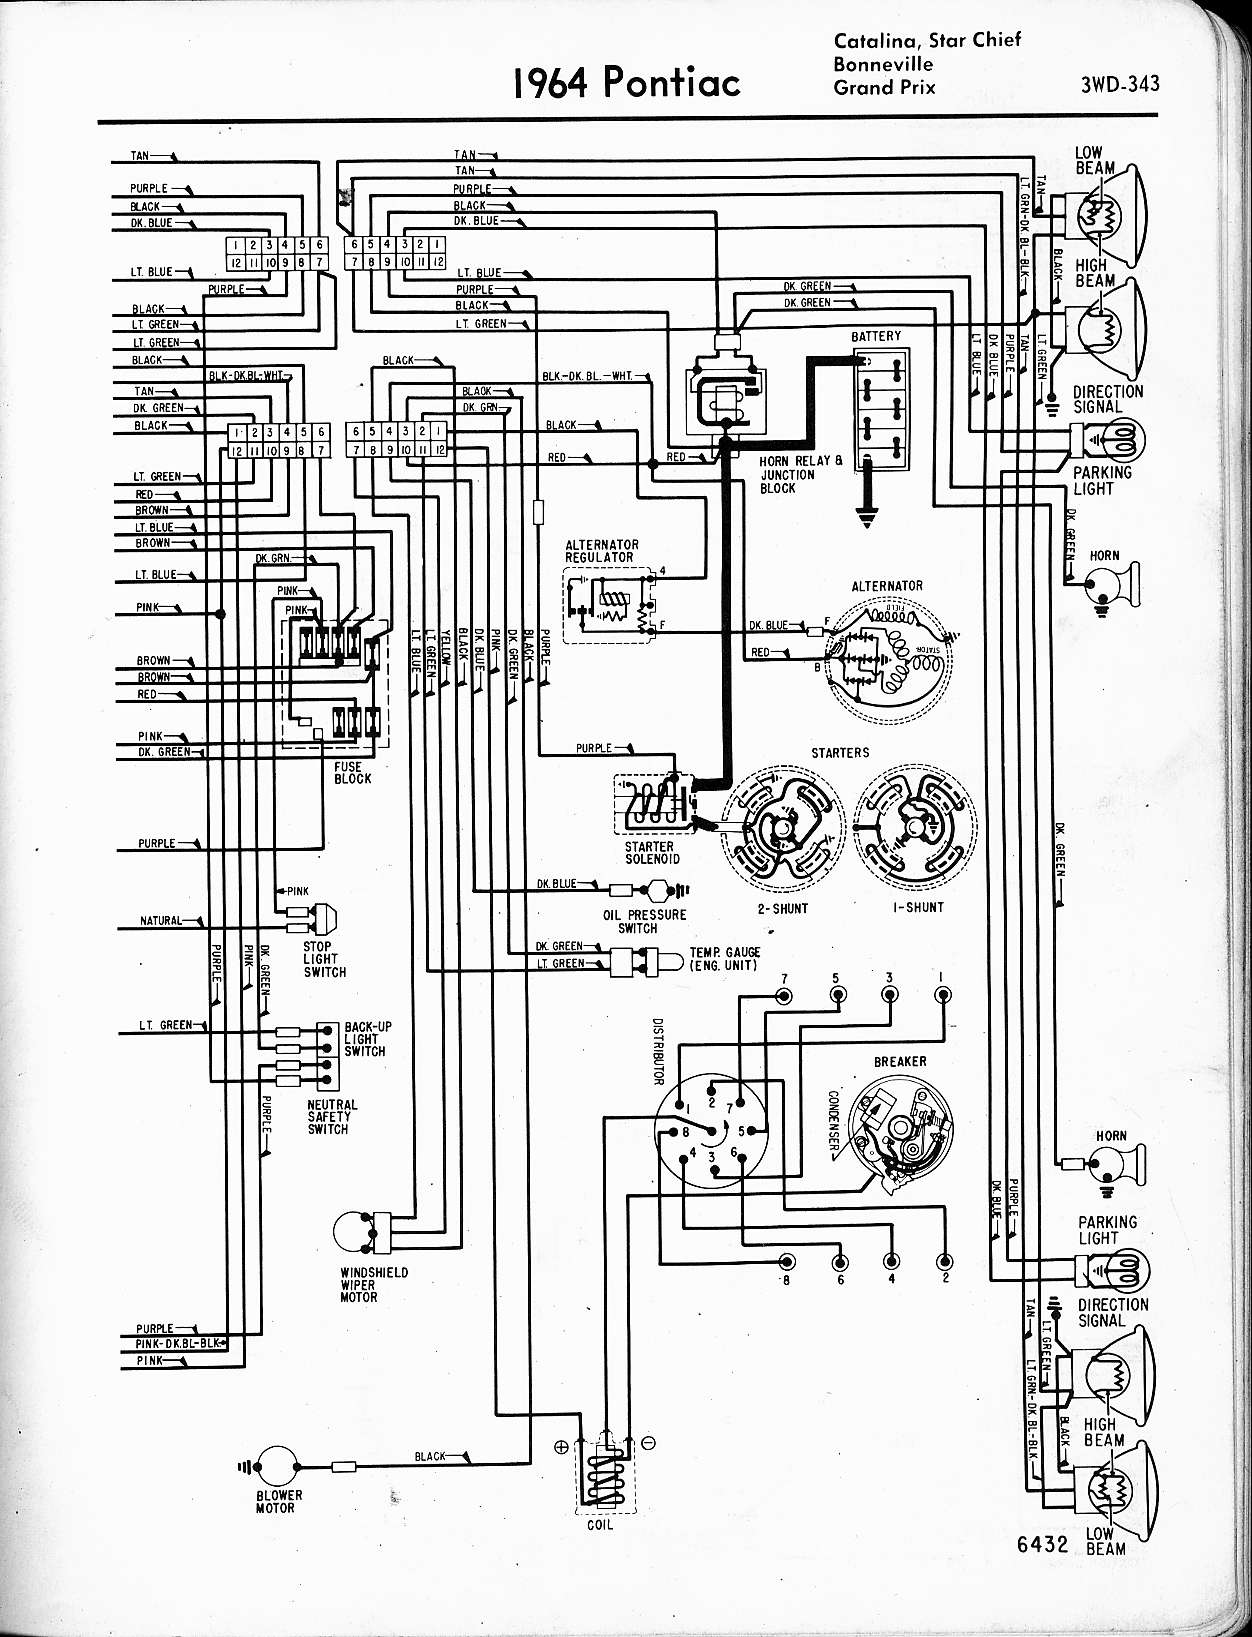 wallace racing wiring diagrams rh wallaceracing com Malibu Engine Diagram F250 Wiring Diagram